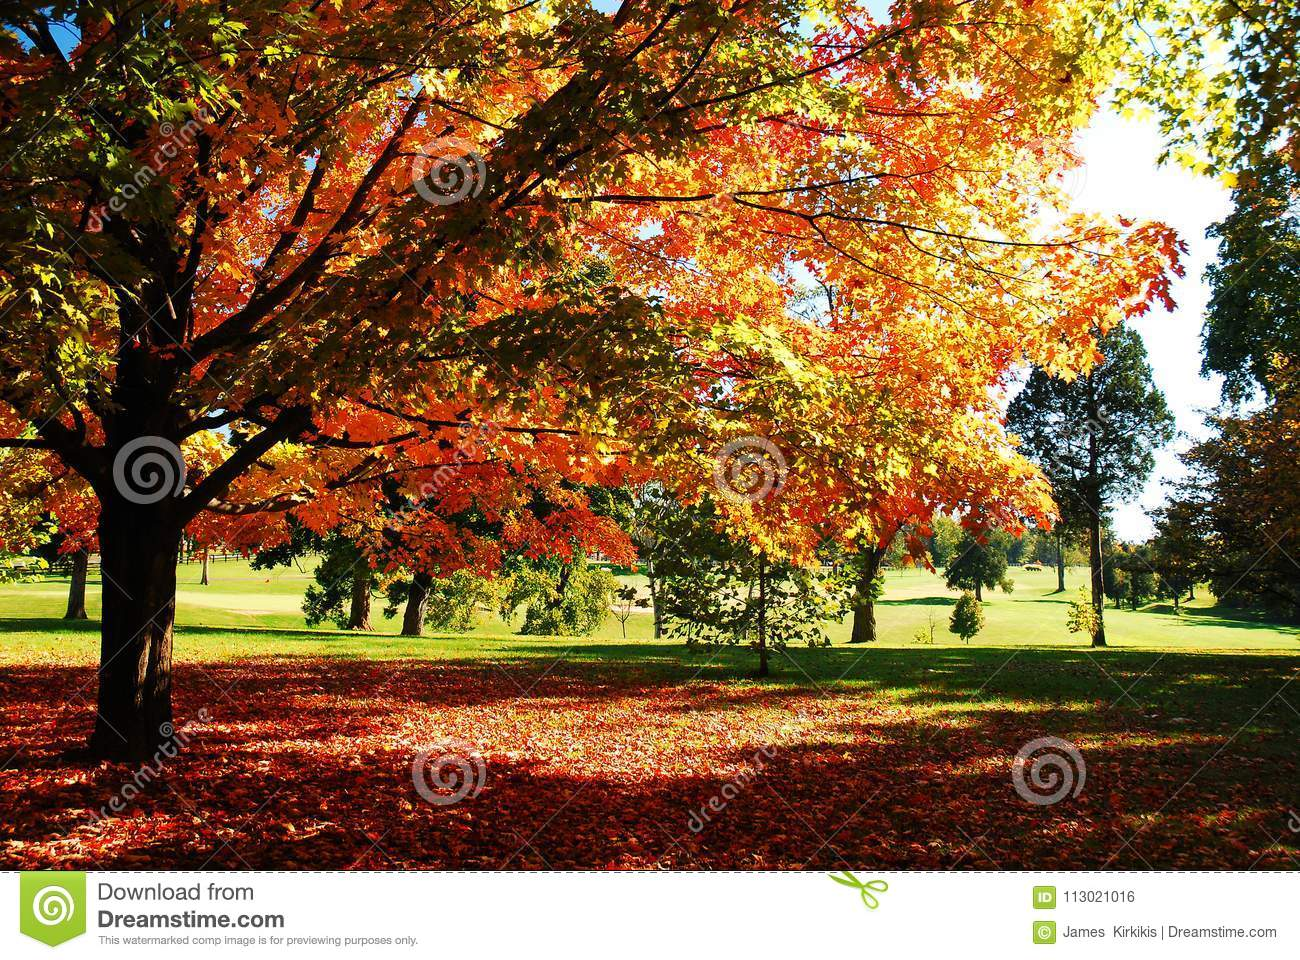 Trees shows a Brilliant Autumn Hue